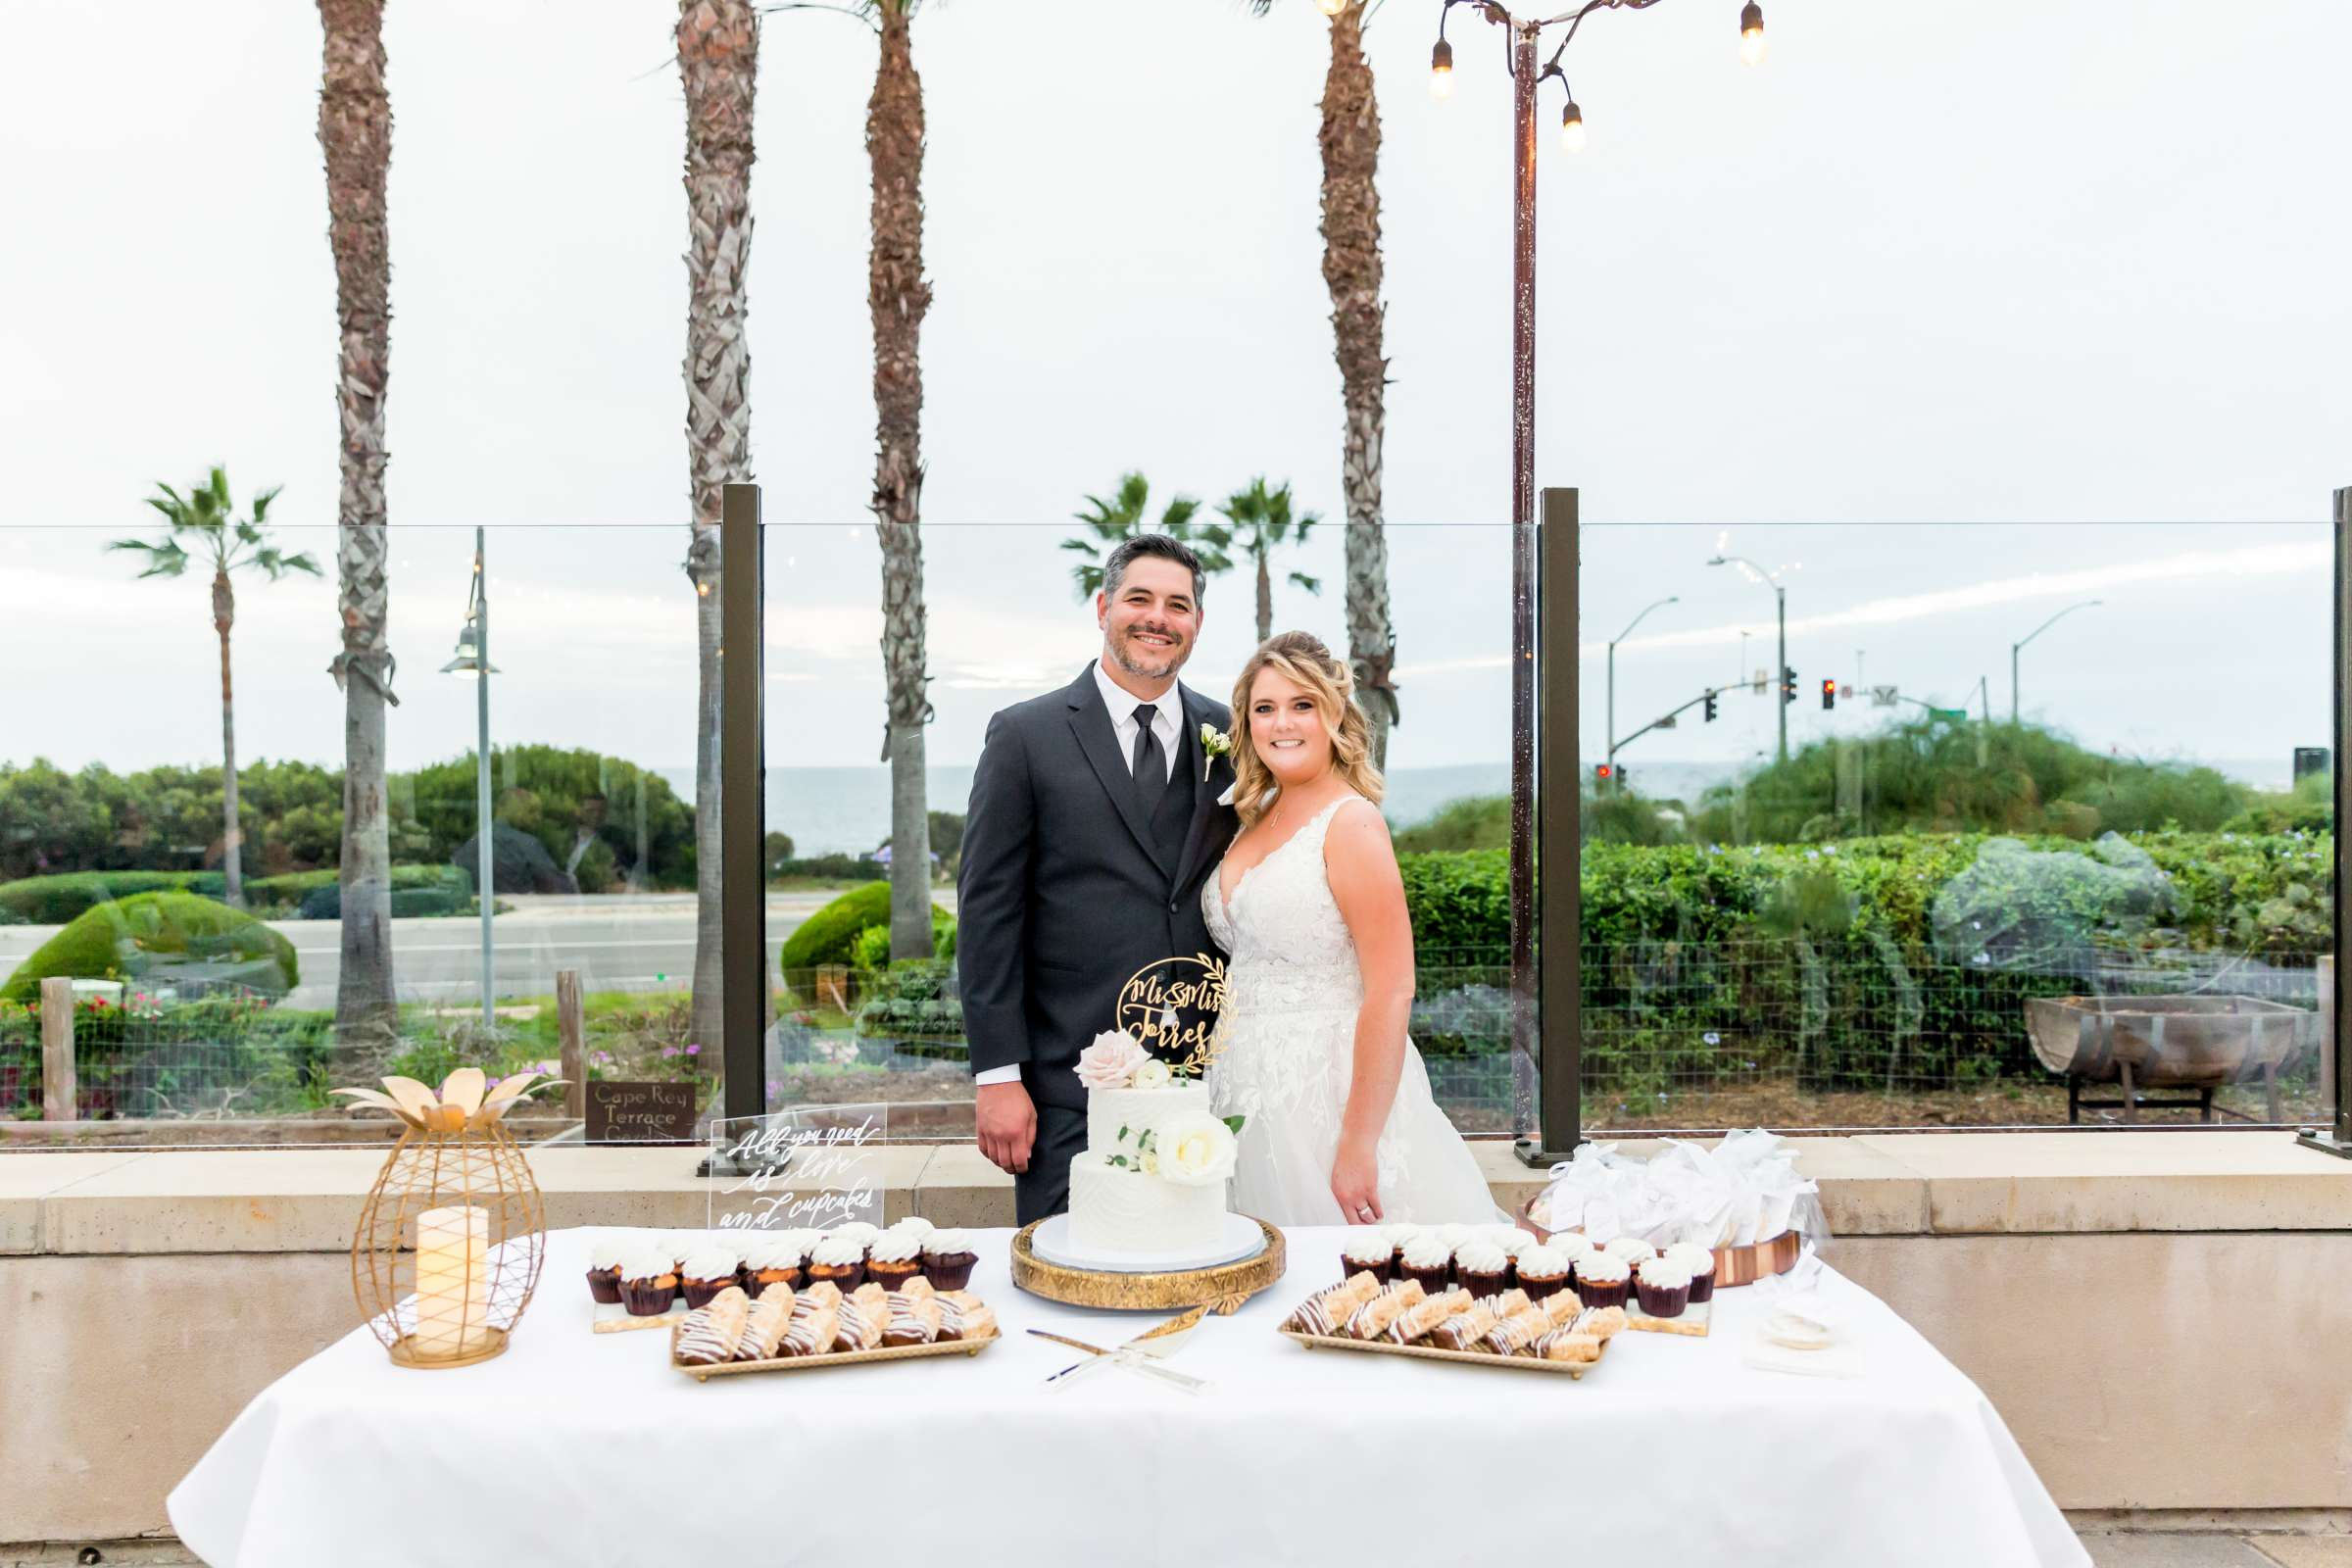 Cape Rey Carlsbad, A Hilton Resort Wedding, Michelle and Justin Wedding Photo #81 by True Photography